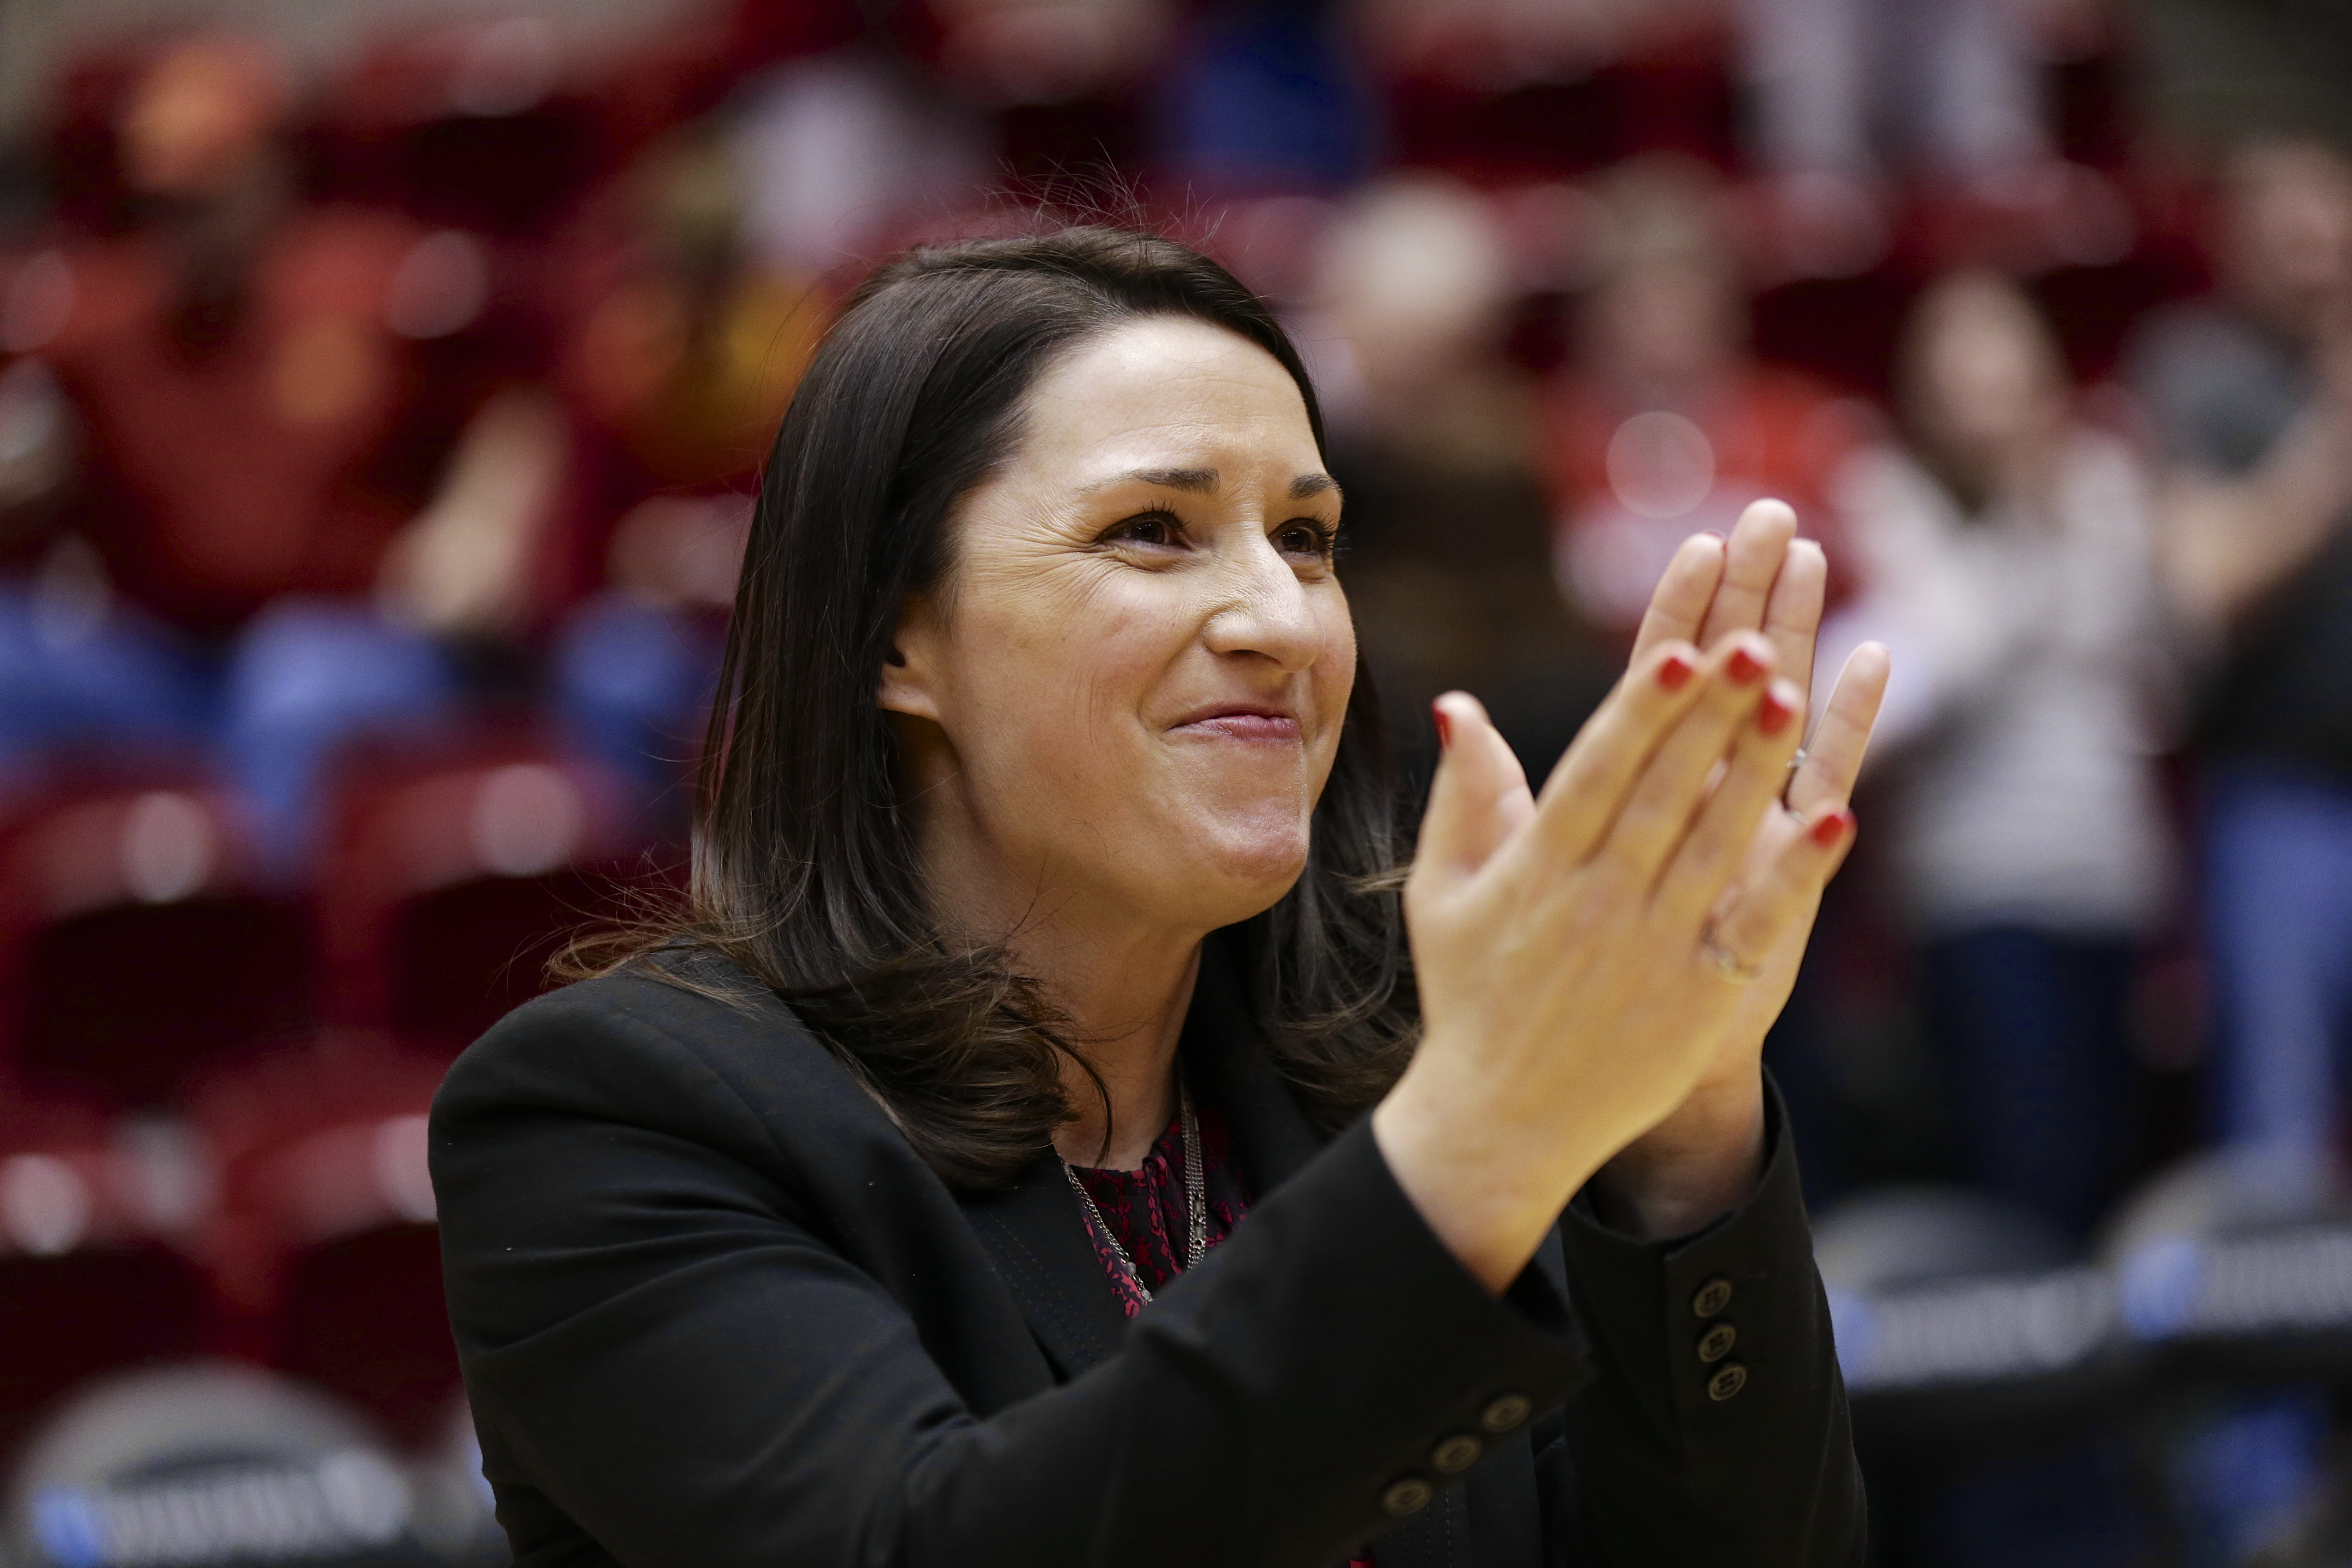 South Dakota coach Amy Williams applauds fans following a first-round game against against Stanford in the NCAA women's college basketball tournament in Ames, Iowa, Saturday, March 22, 2014. Stanford won 81-62. (AP Photo/Nati Harnik)